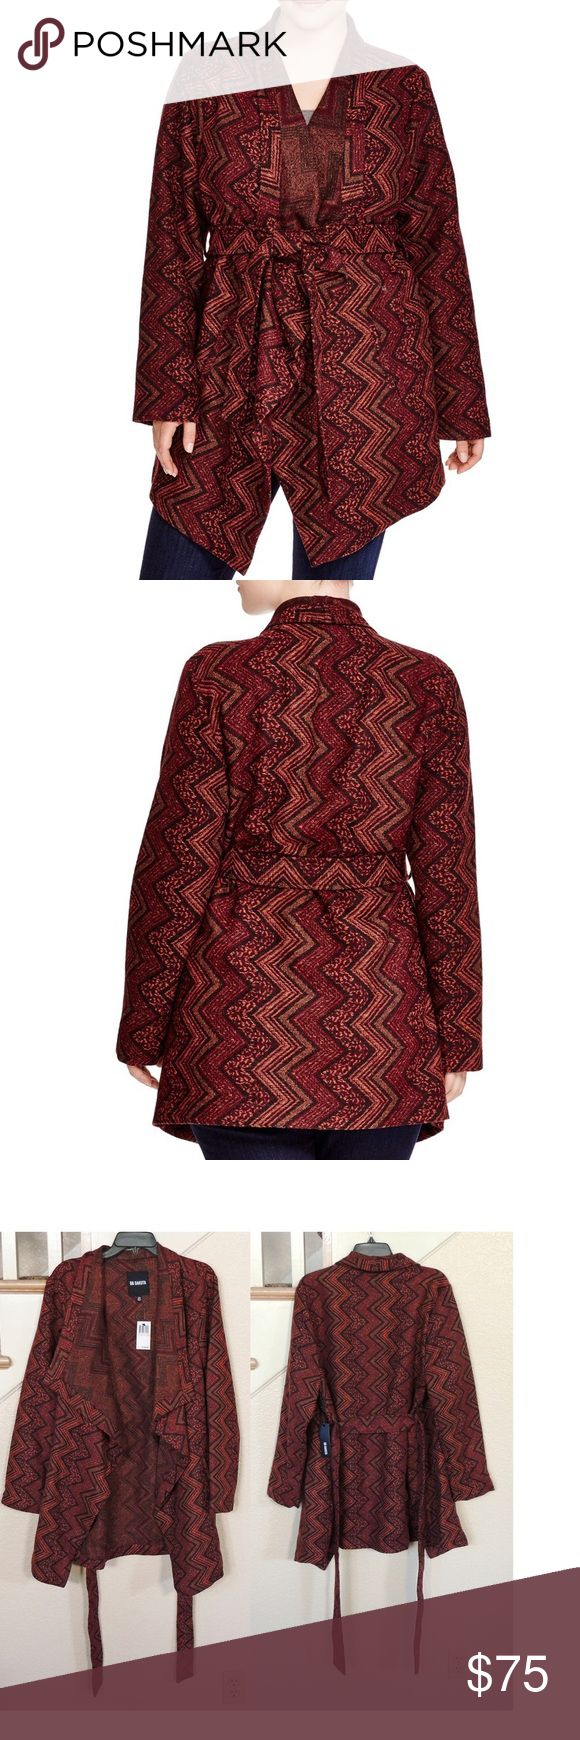 Plus Size Burgundy Chevron Wrap Jacket ** Reasonable Offers Welcome - No Trades**  Size 2x = 18w - 20w - Size 3x 22w - 24w --65% polyester, 32% acrylic, 3% wool - Rust, maroon and black hued chevron printed jacket with oversized collar and tie wrap closure. Equipped with double side pockets and asymmetrical hemline BB Dakota Jackets & Coats